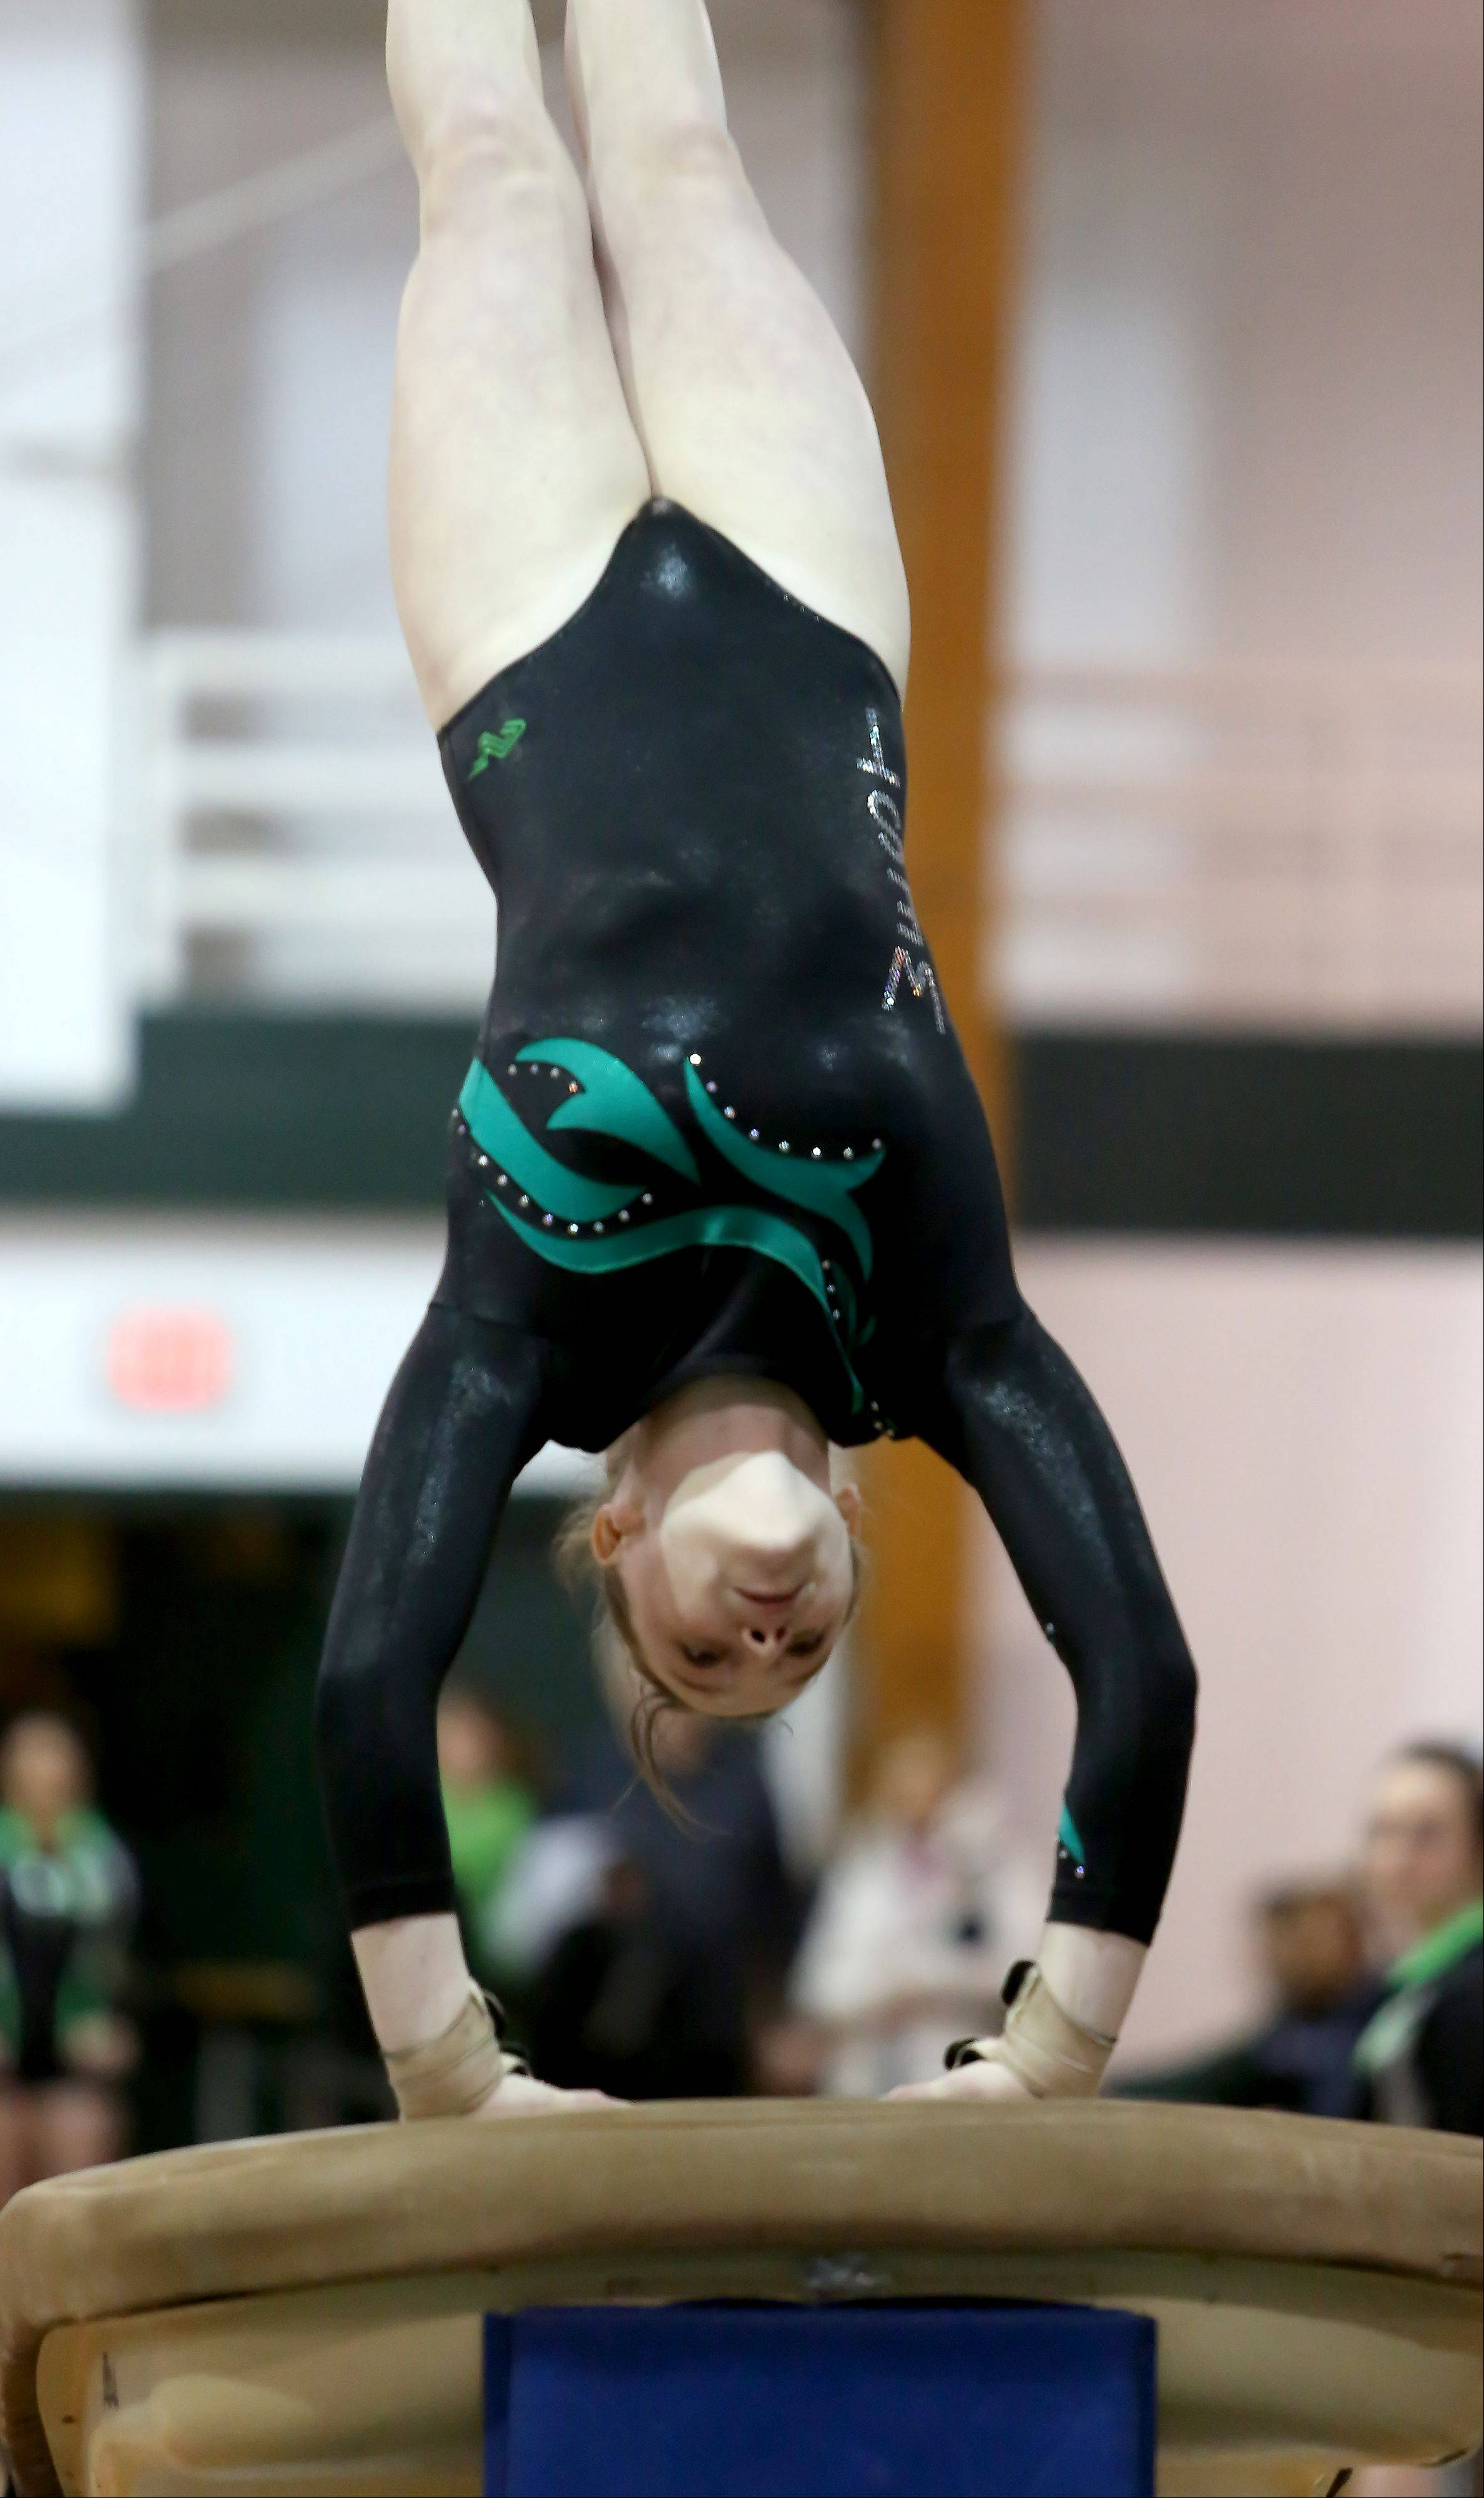 Mackenzie O'Keefe of Glenbard West performs on the vault during sectional gymnastics at Glenbard West on Tuesday in Glen Ellyn.